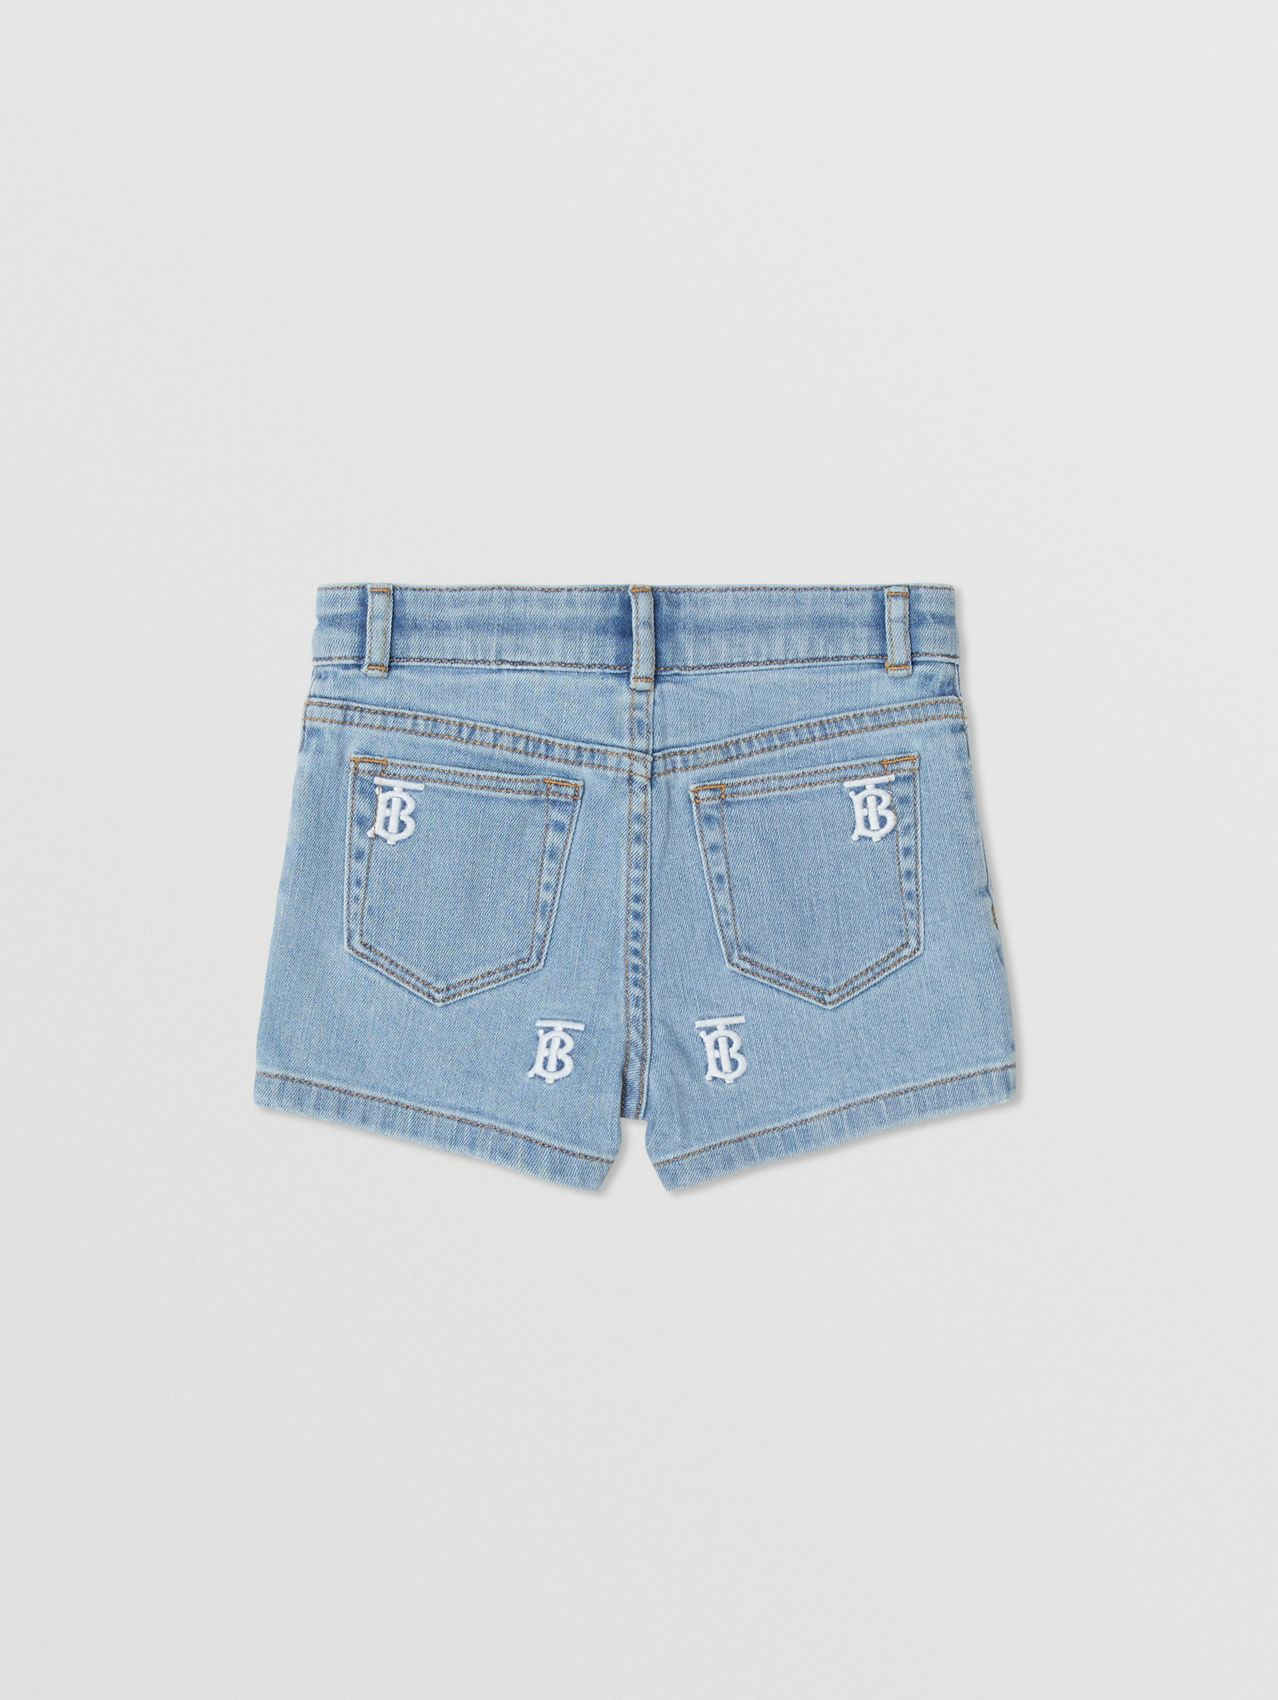 Monogram Motif Stretch Denim Shorts in Pale Blue